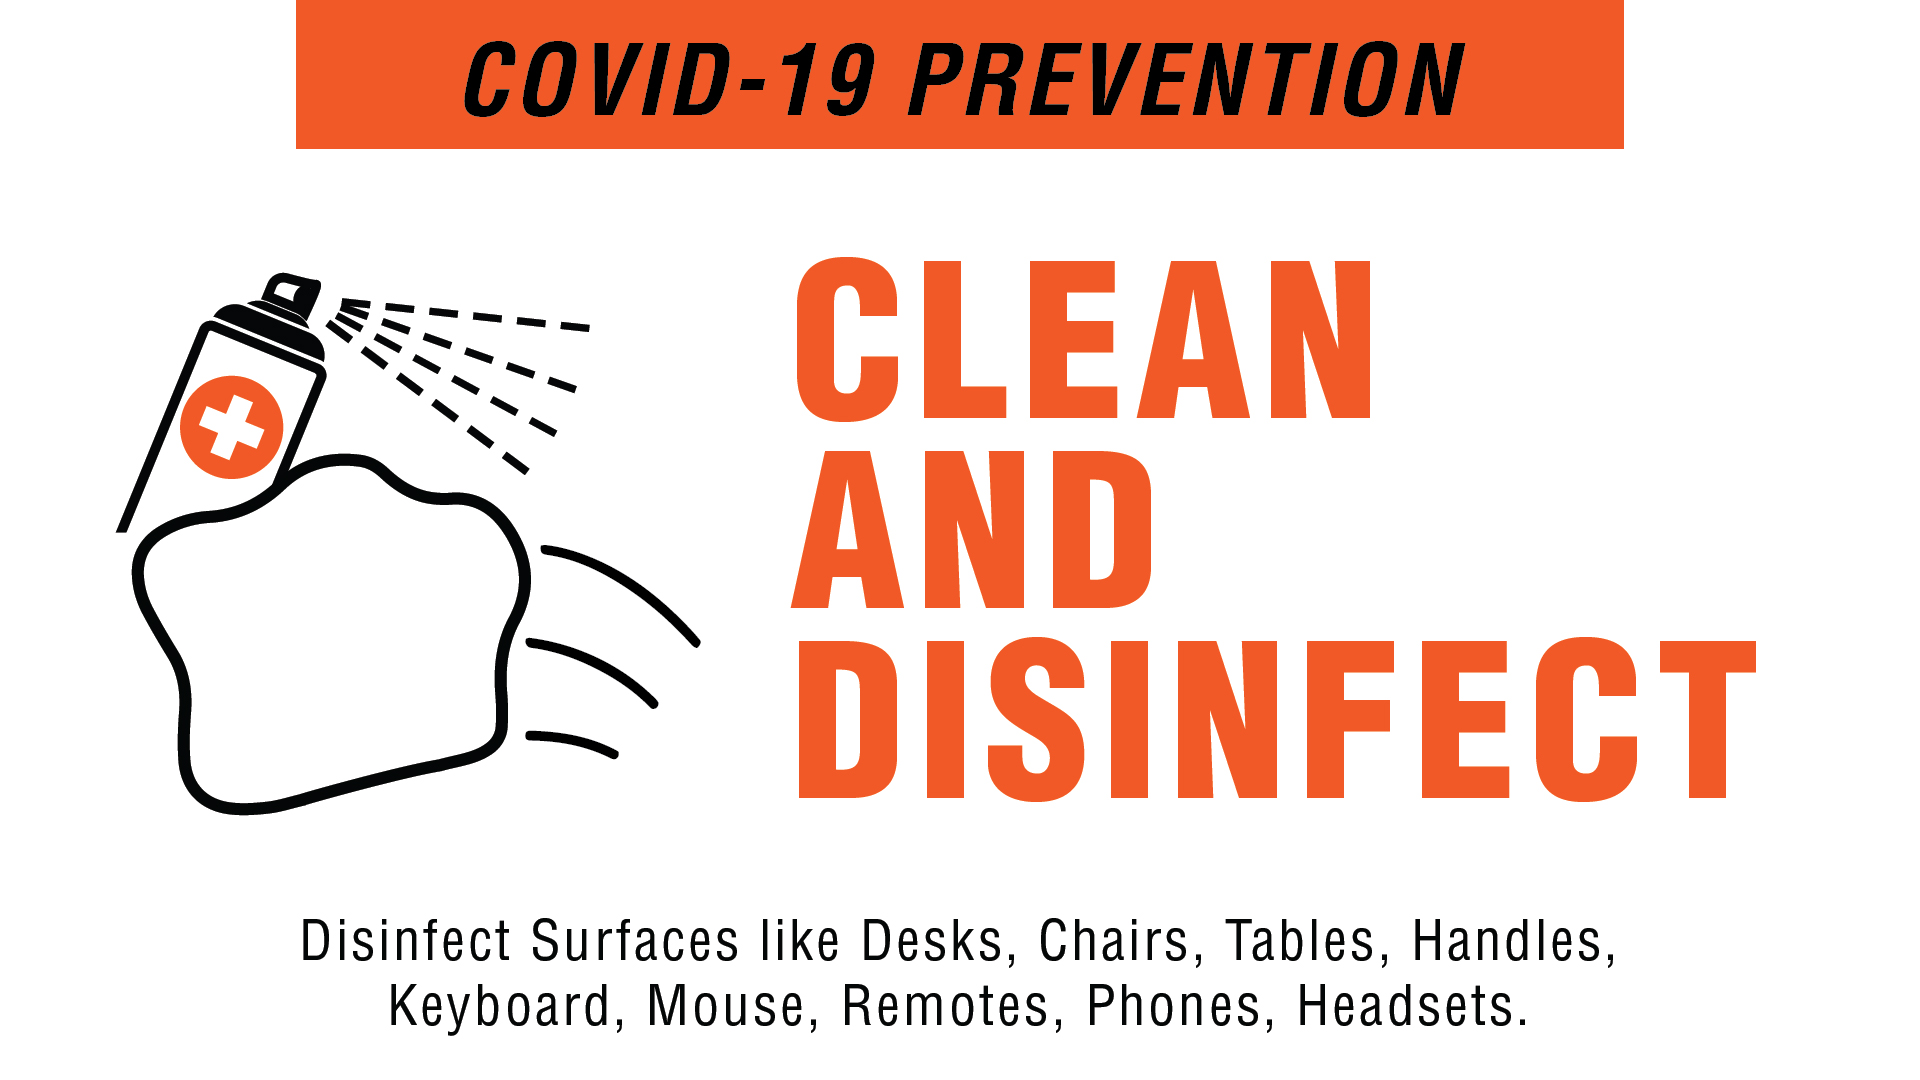 Covid-19 Prevention - Clean and Disinfect Digital Signage Image